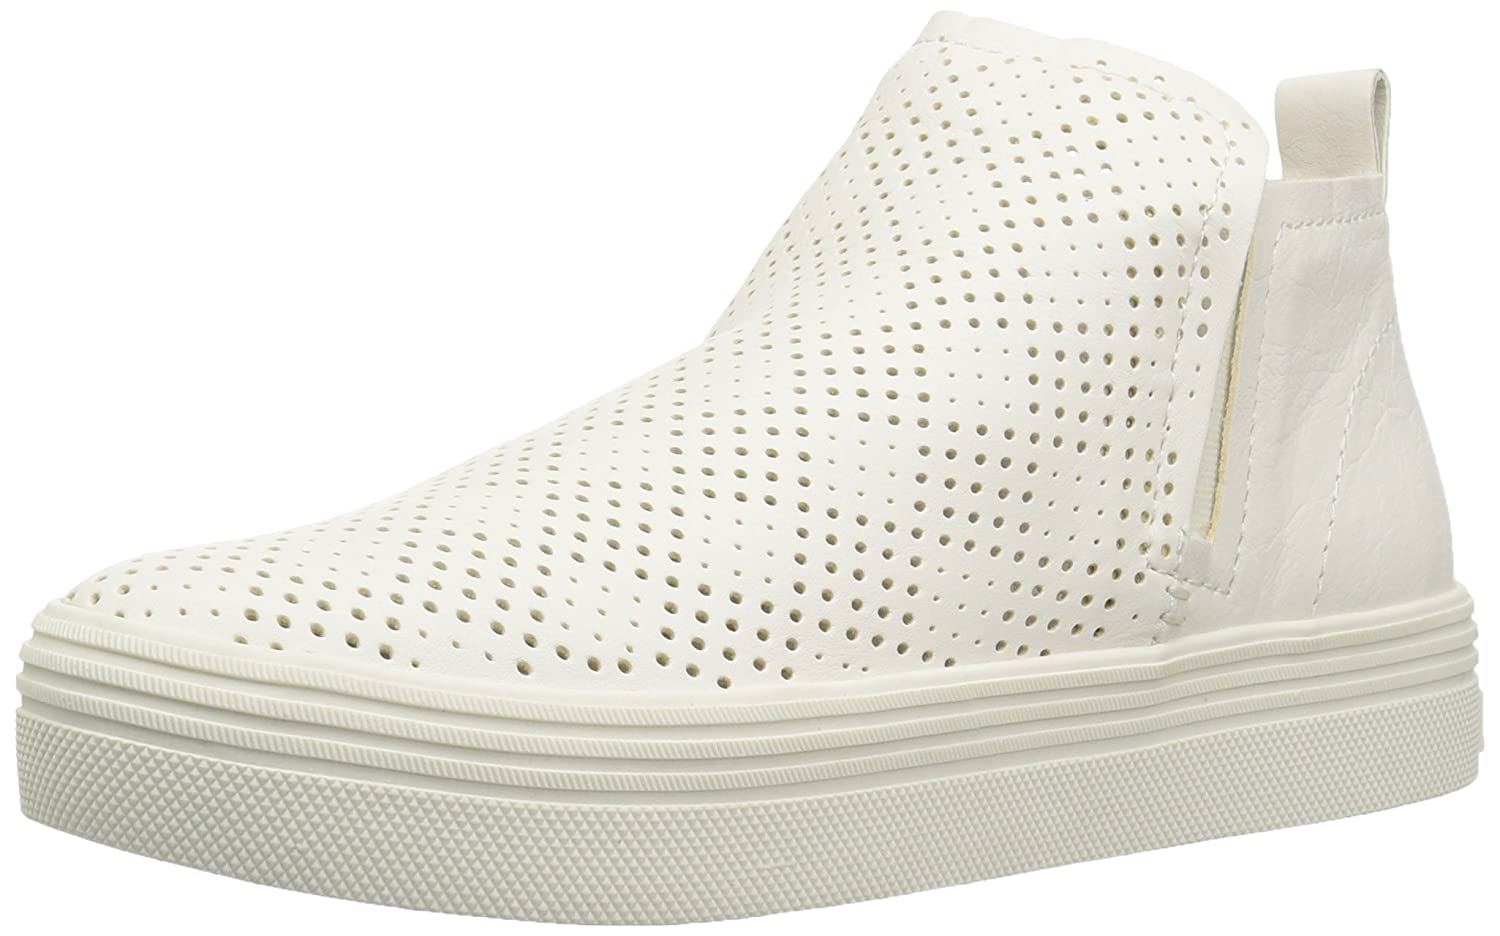 Dolce Vita Women's Tate Perf Sneaker B07CNF7TZ8 7 M US|Off White Leather